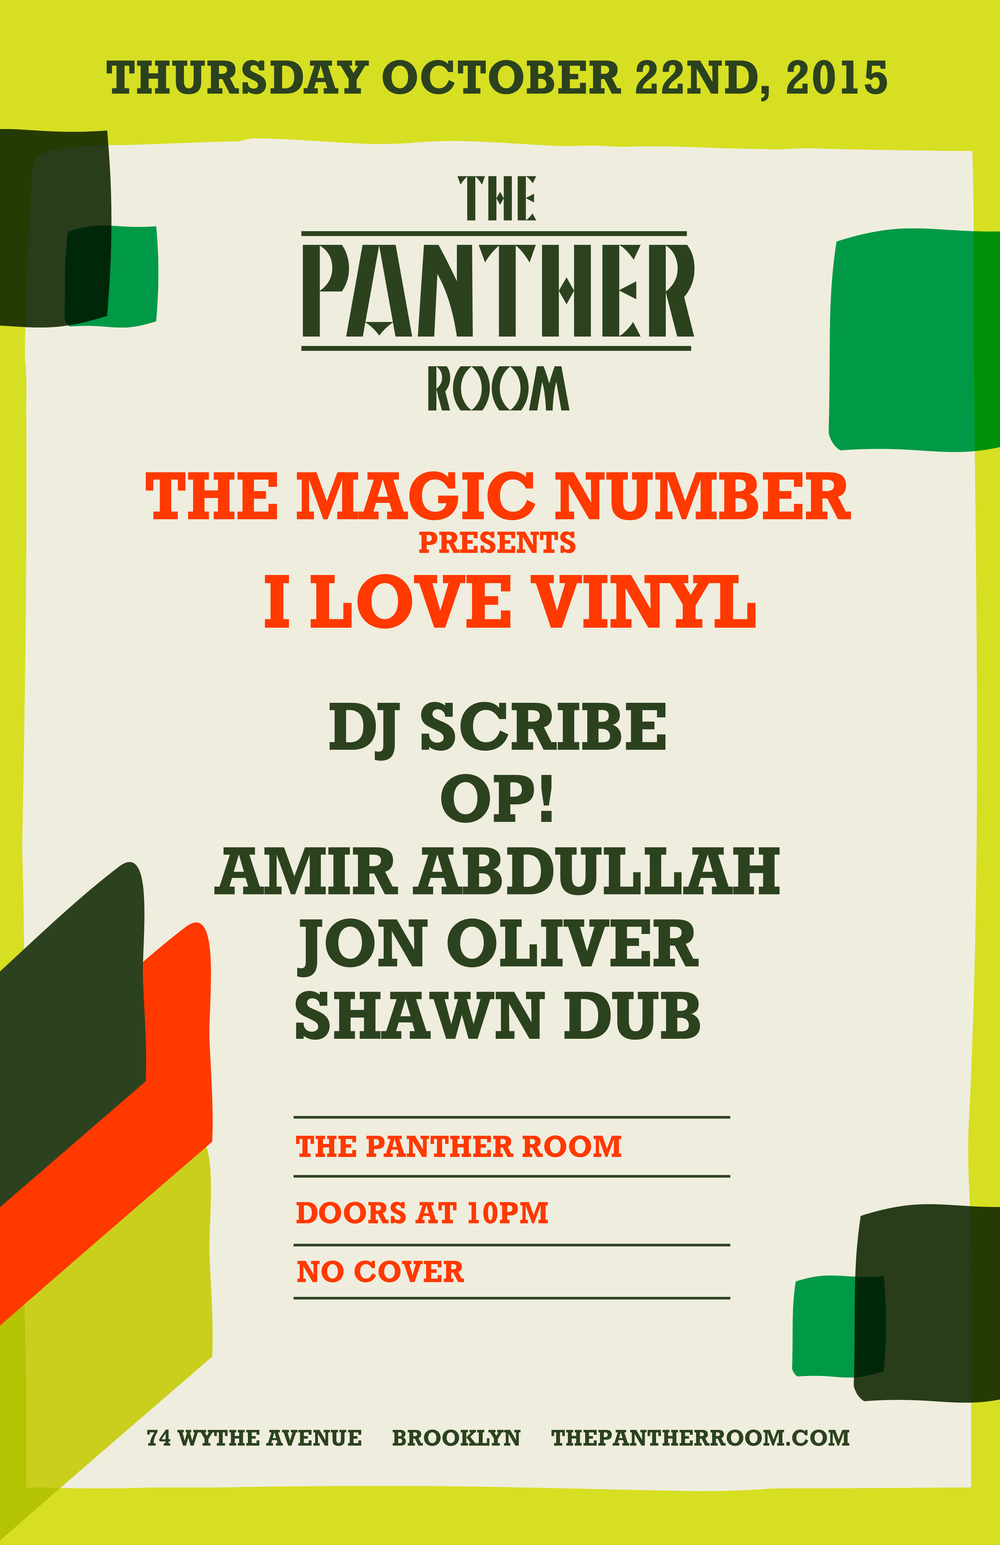 I Love Vinyl   *THURSDAY* Oct 22nd    Residents:   DJ Scribe   Amir Abdullah   Jon Oliver   OP!   Shawn Dub    It's official. I Love Vinyl has a new monthly home at The Panther Room at Ouput and we are happier than feet. As far as we're concerned, it's a sonic marriage made in the analog heaven of our dusty crate-laden dreams. The Magic Number, Panther's fledgeling Thursday night series, tasked with breaking down the barriers of Output's house & techno orthodoxy, is presenting I Love Vinyl as their first monthly residency. And we plan to take full advantage, working the knobs, and the crowd into a frenzy, with the added bonuses of mixer/isolator/eq courtesy of   Alpha Recording System  lights by the legendary Ariel, and a no-cove  r door policy, for the time being.  plus our good friend and great dj Danilo Braca aka  danyb  of  TSoNYC The Sound of New York City  and  Alpha Recording System  will rotate in with us at the beginning and end of the night. nice!  at The Panther Room at Output 74 Wythe Ave (use separate entrance on North 12th) Williamsburg  No Cover 21+ w ID